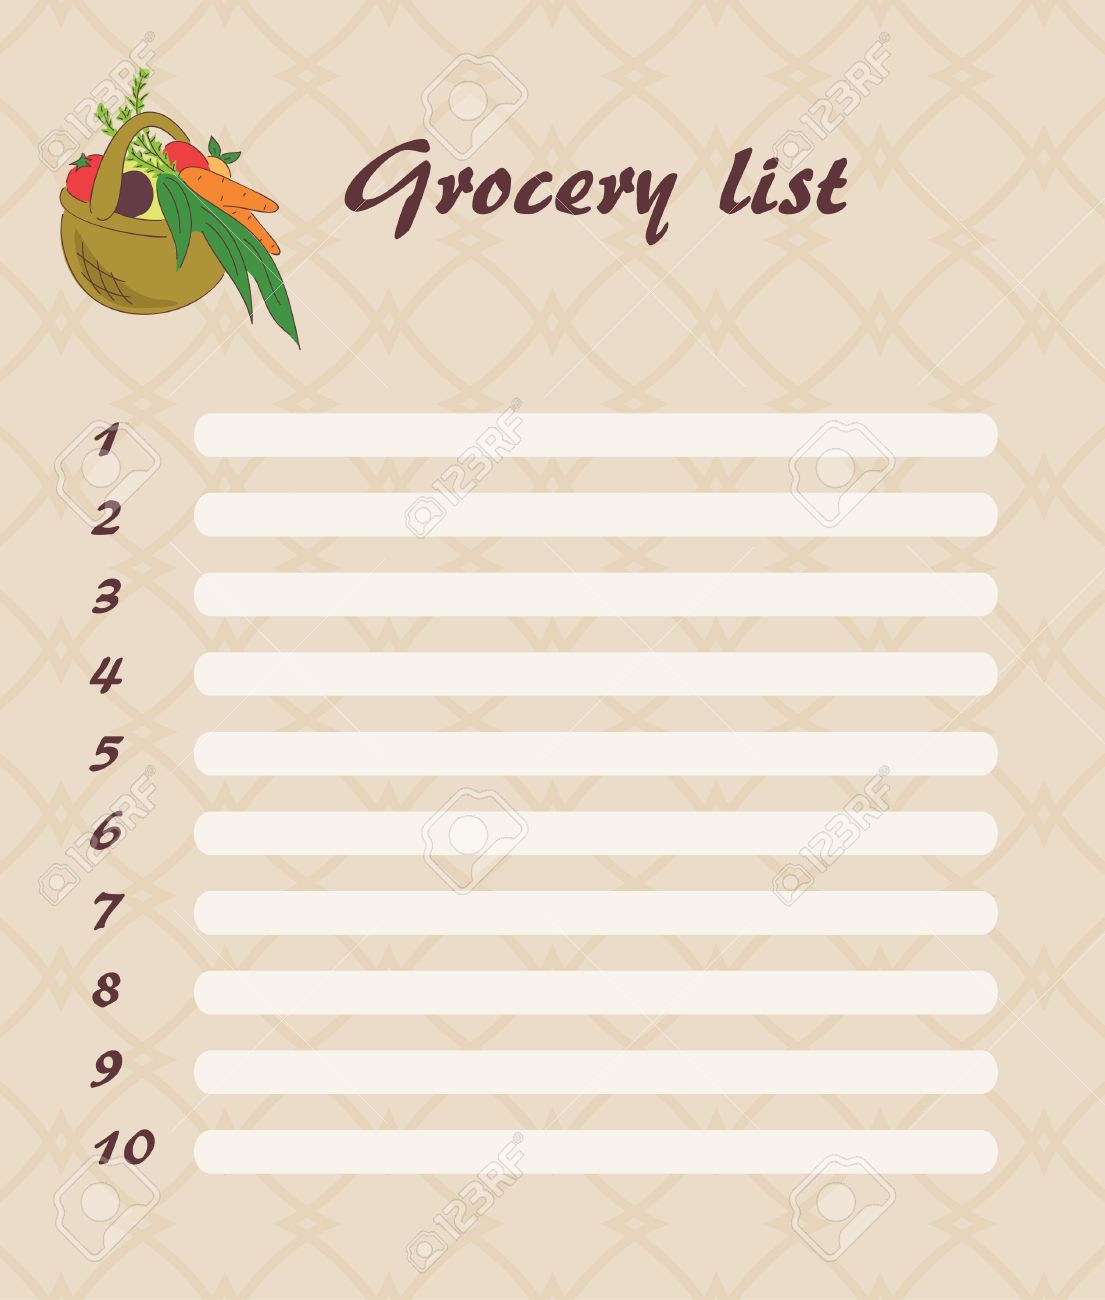 Grocery List Clipart 10 Free Cliparts